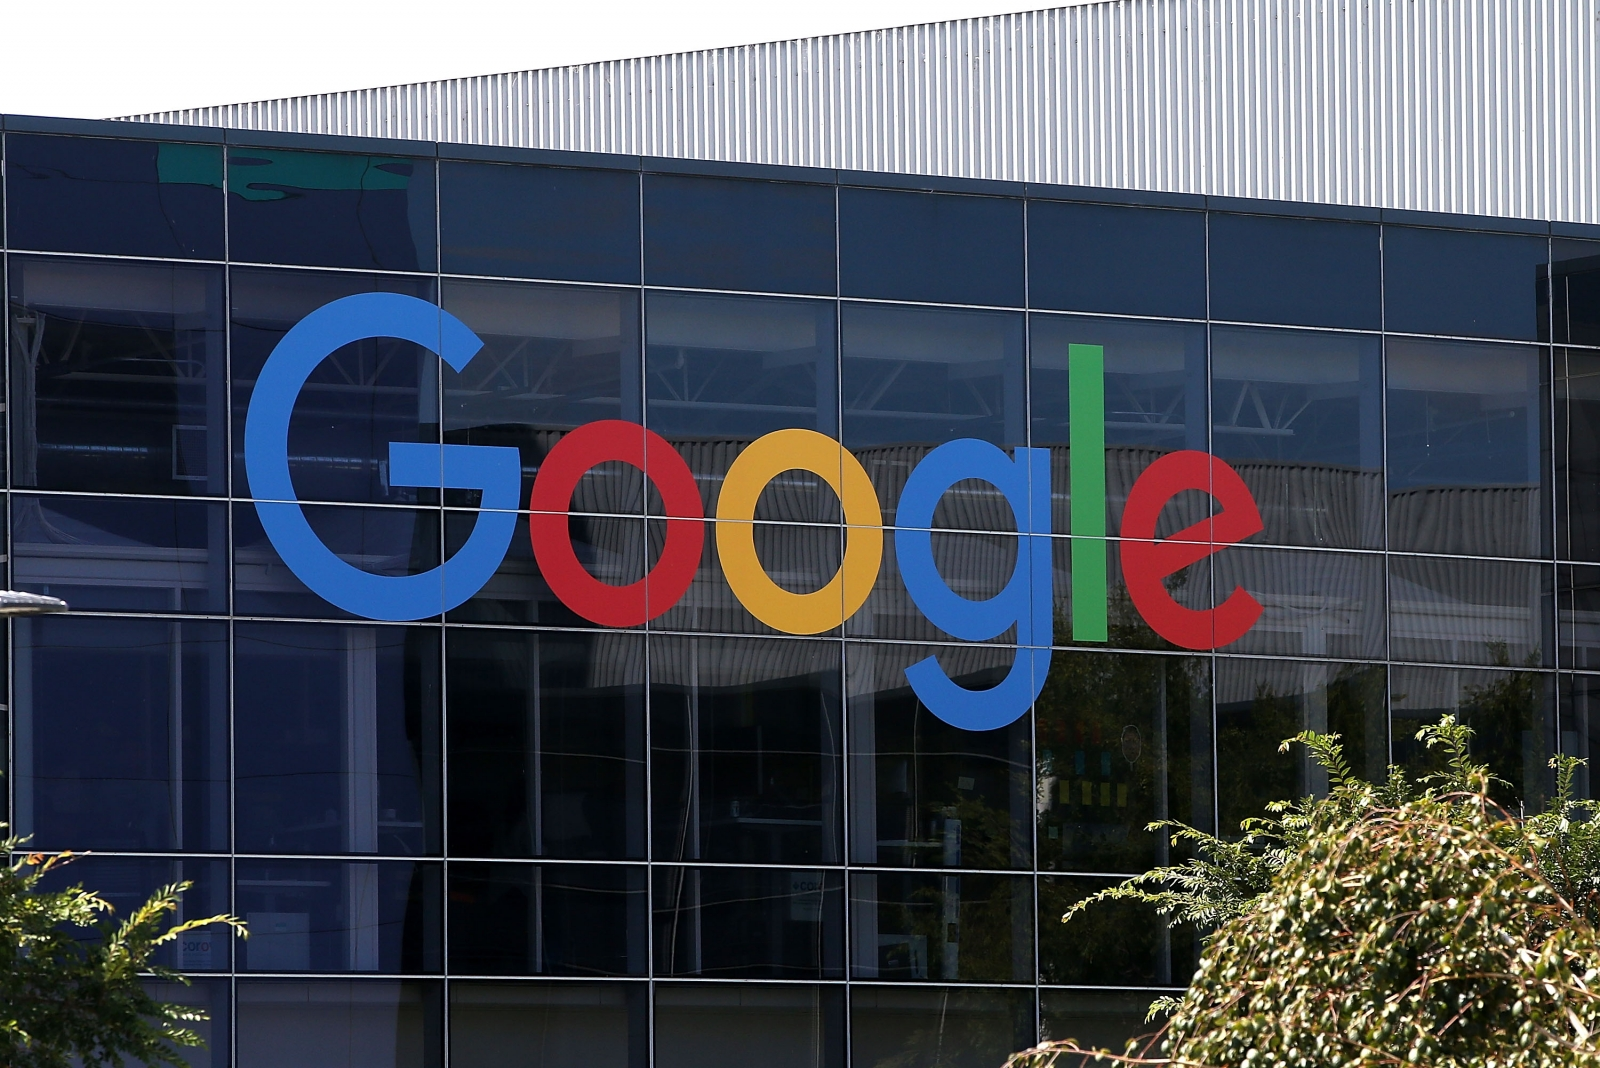 Google To Pay $200000 To Hackers If They Find Bug In Android